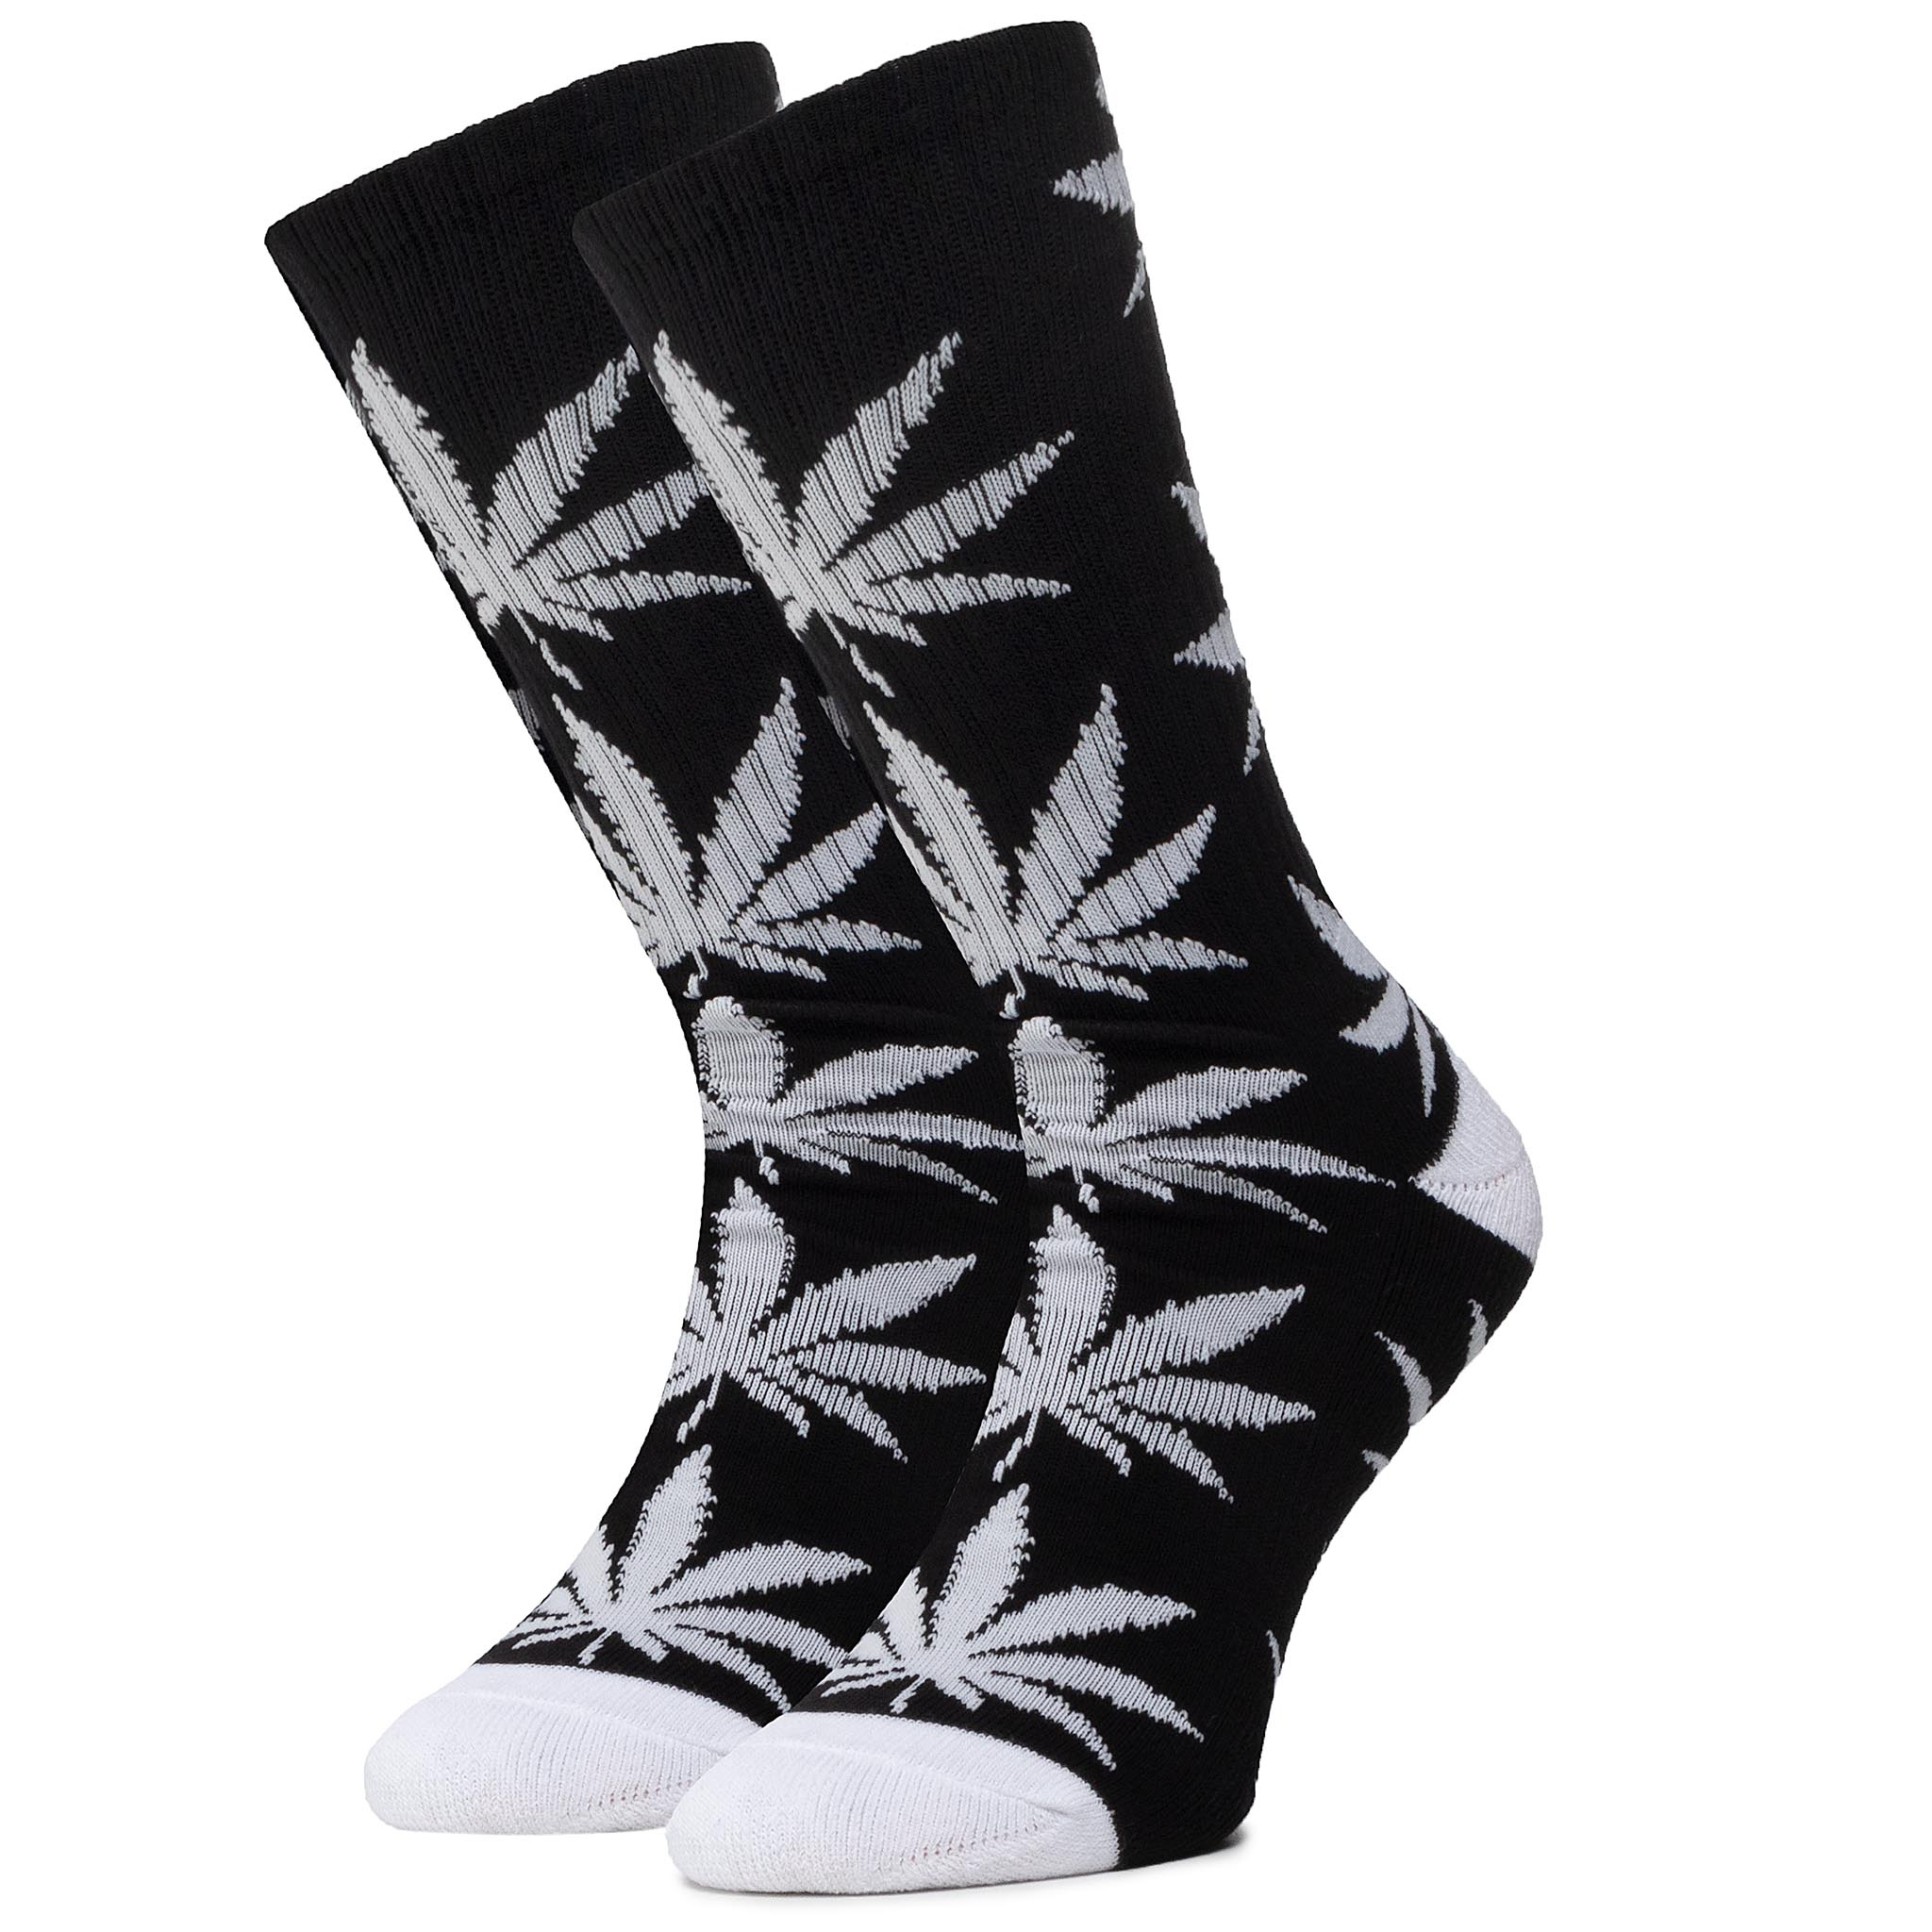 Șosete Înalte Unisex Huf - Essentials Plantlife Sock Sk00298 R.Os Black imagine epantofi.ro 2021